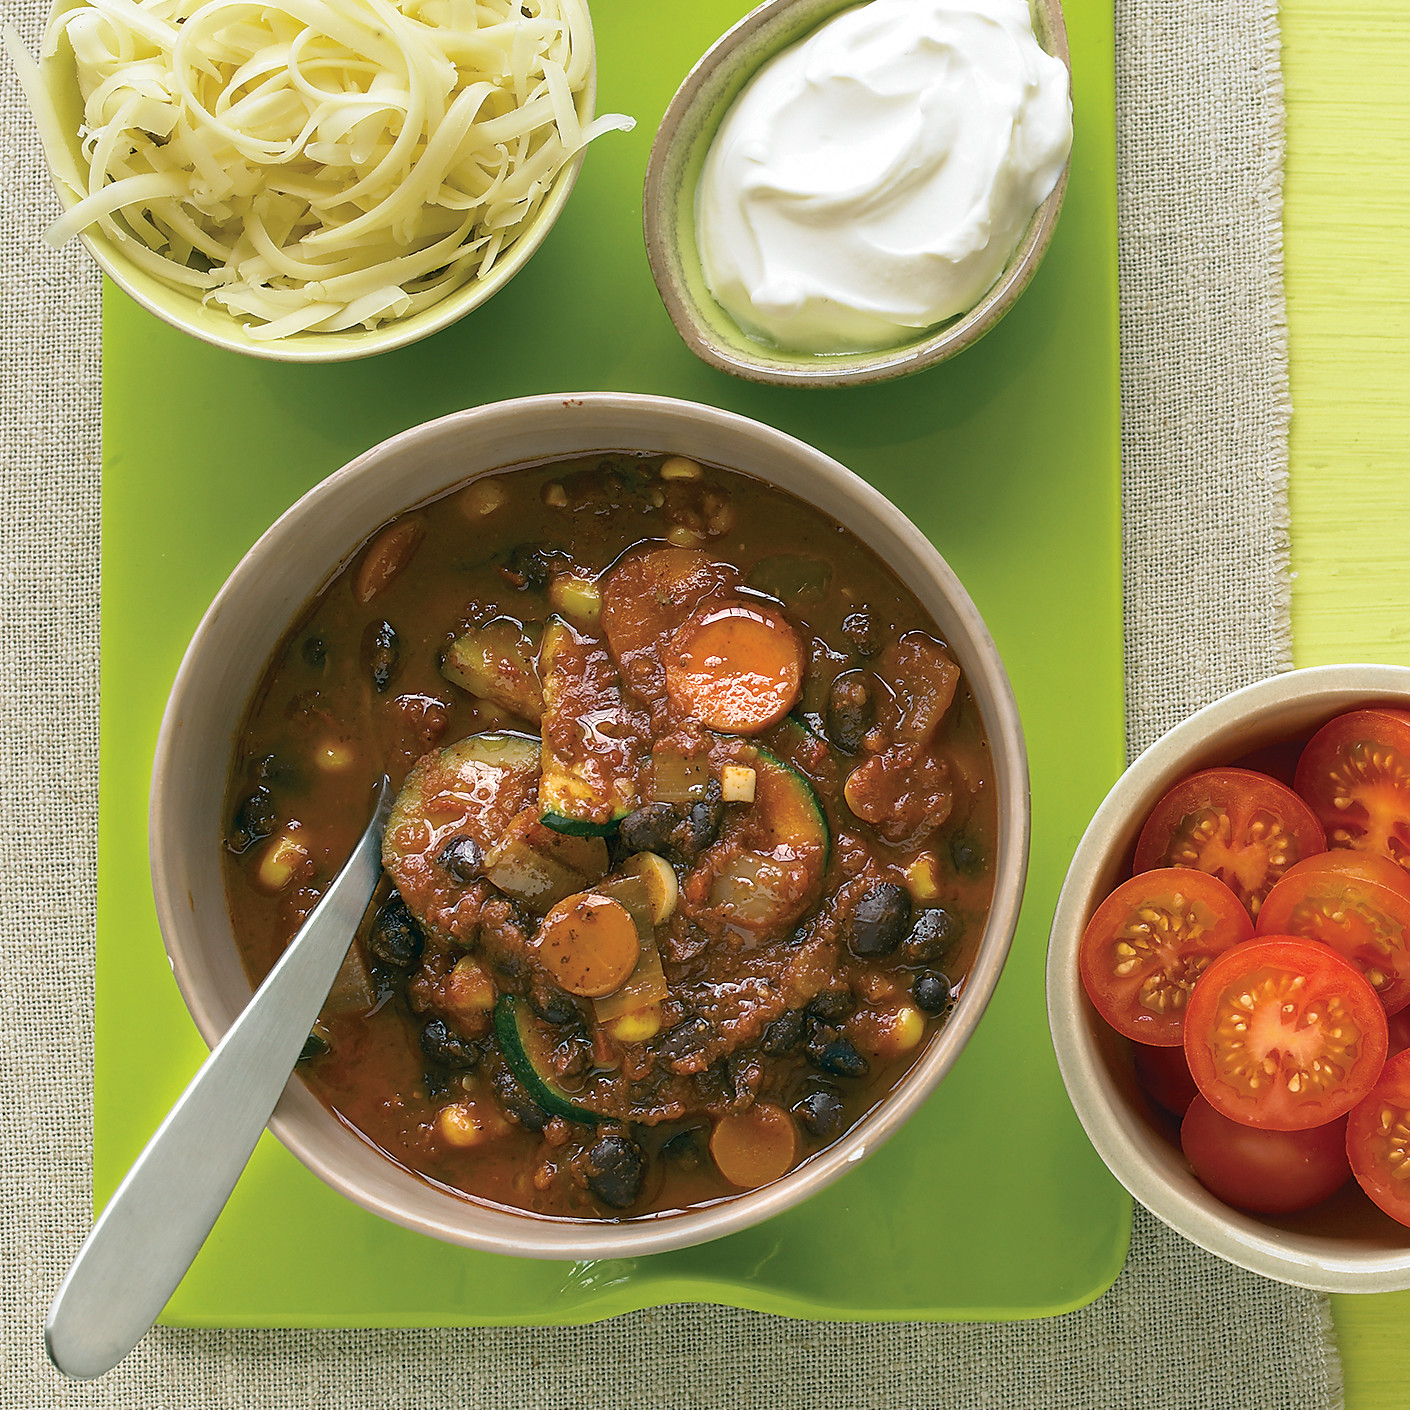 Vegitarian Dinner Ideas: Vegetarian Recipes To Introduce Into Your Weekly Menu